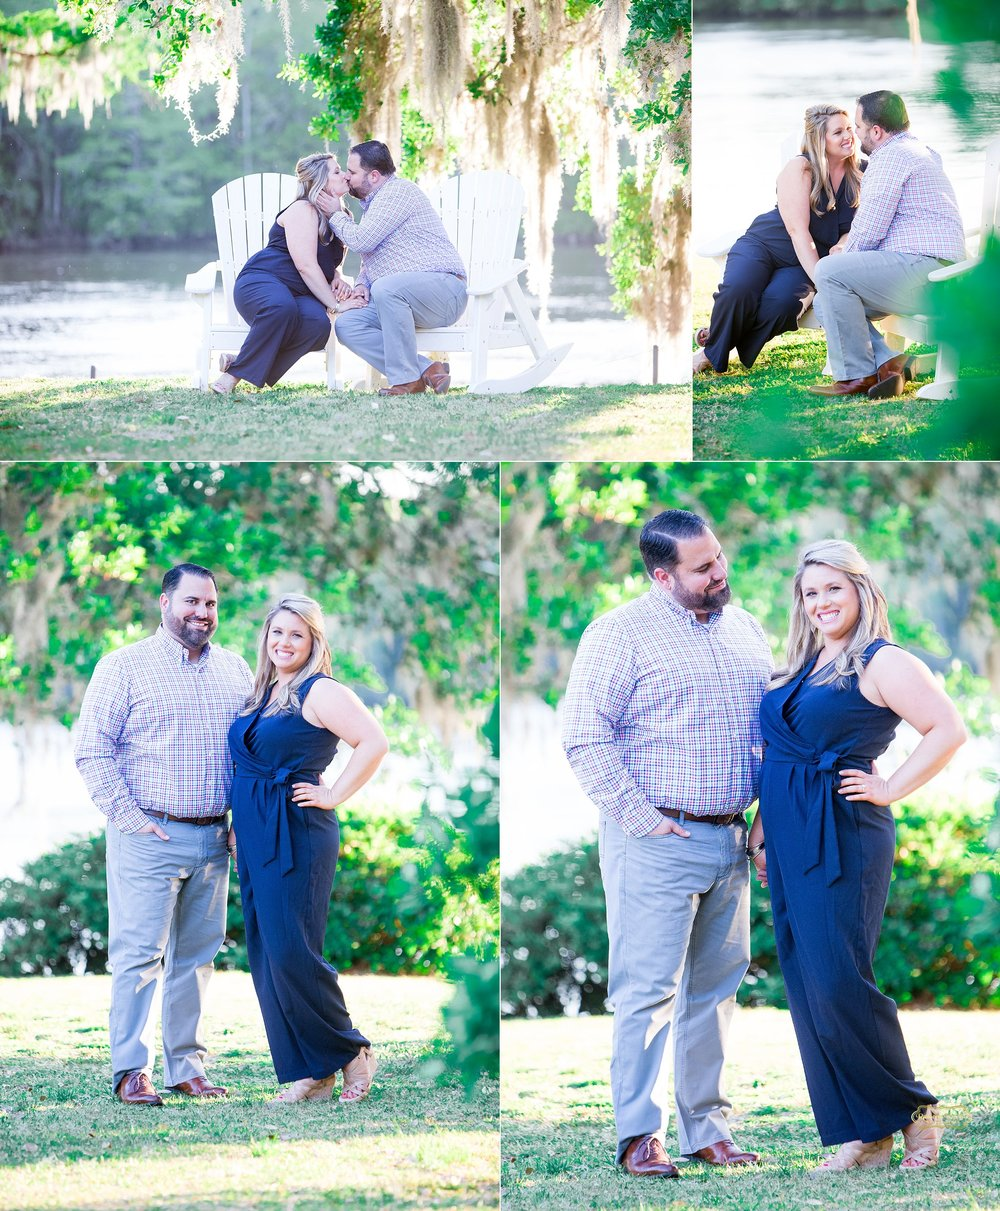 couple intimate moments for engagement shoot at wachesaw plantation eith lady dressed in blue romper with ramona nicolae photography.jpg